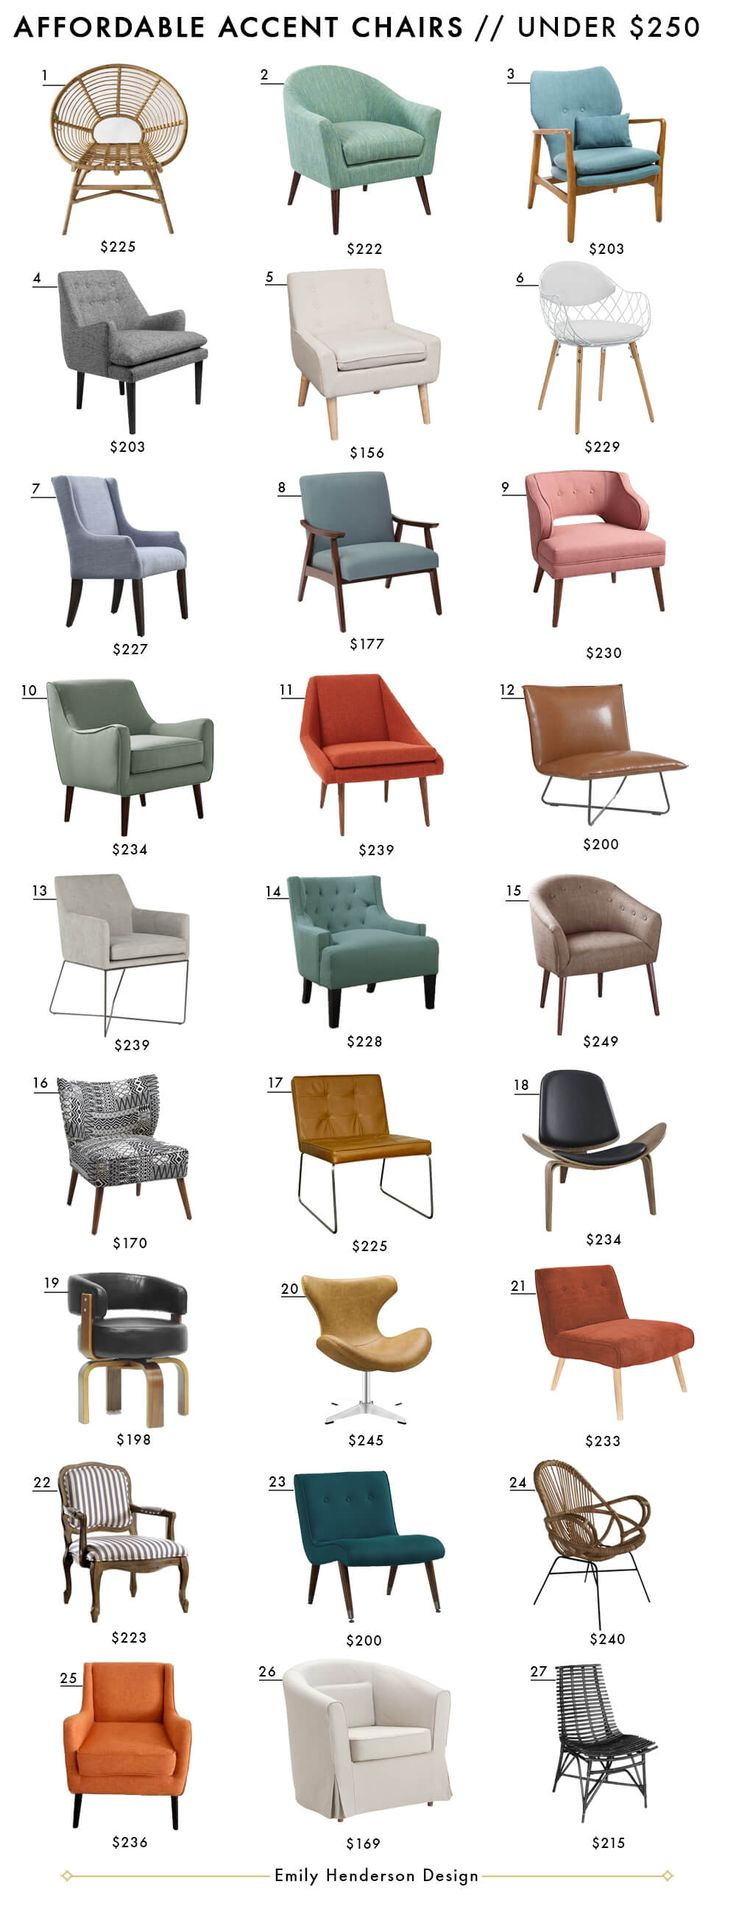 Affordable Accent Chairs Under 250